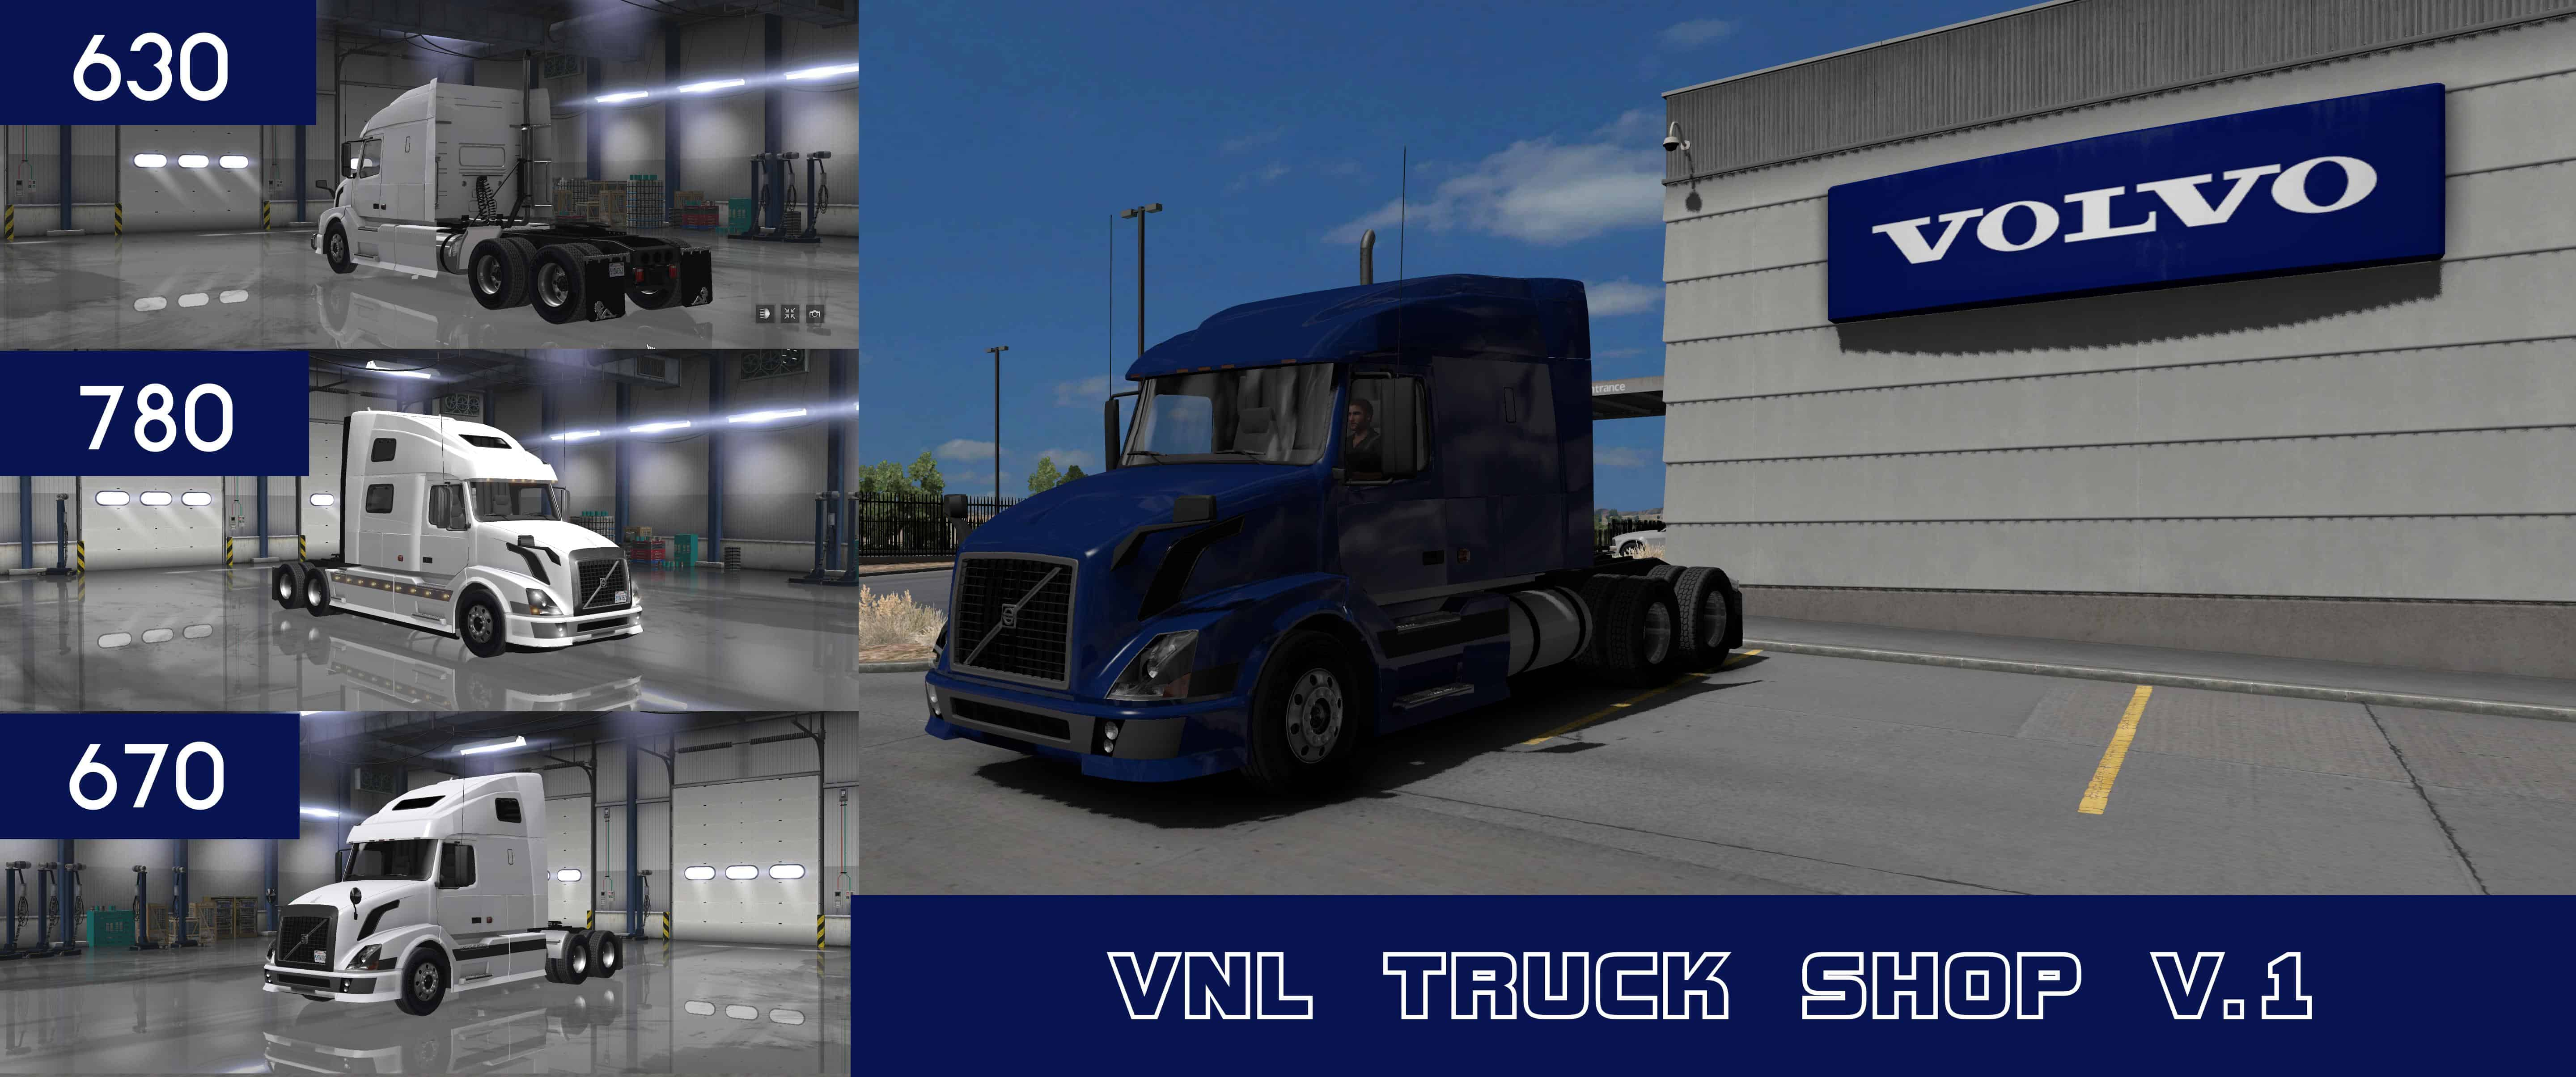 to parts hd old pictures free volvo images download truck